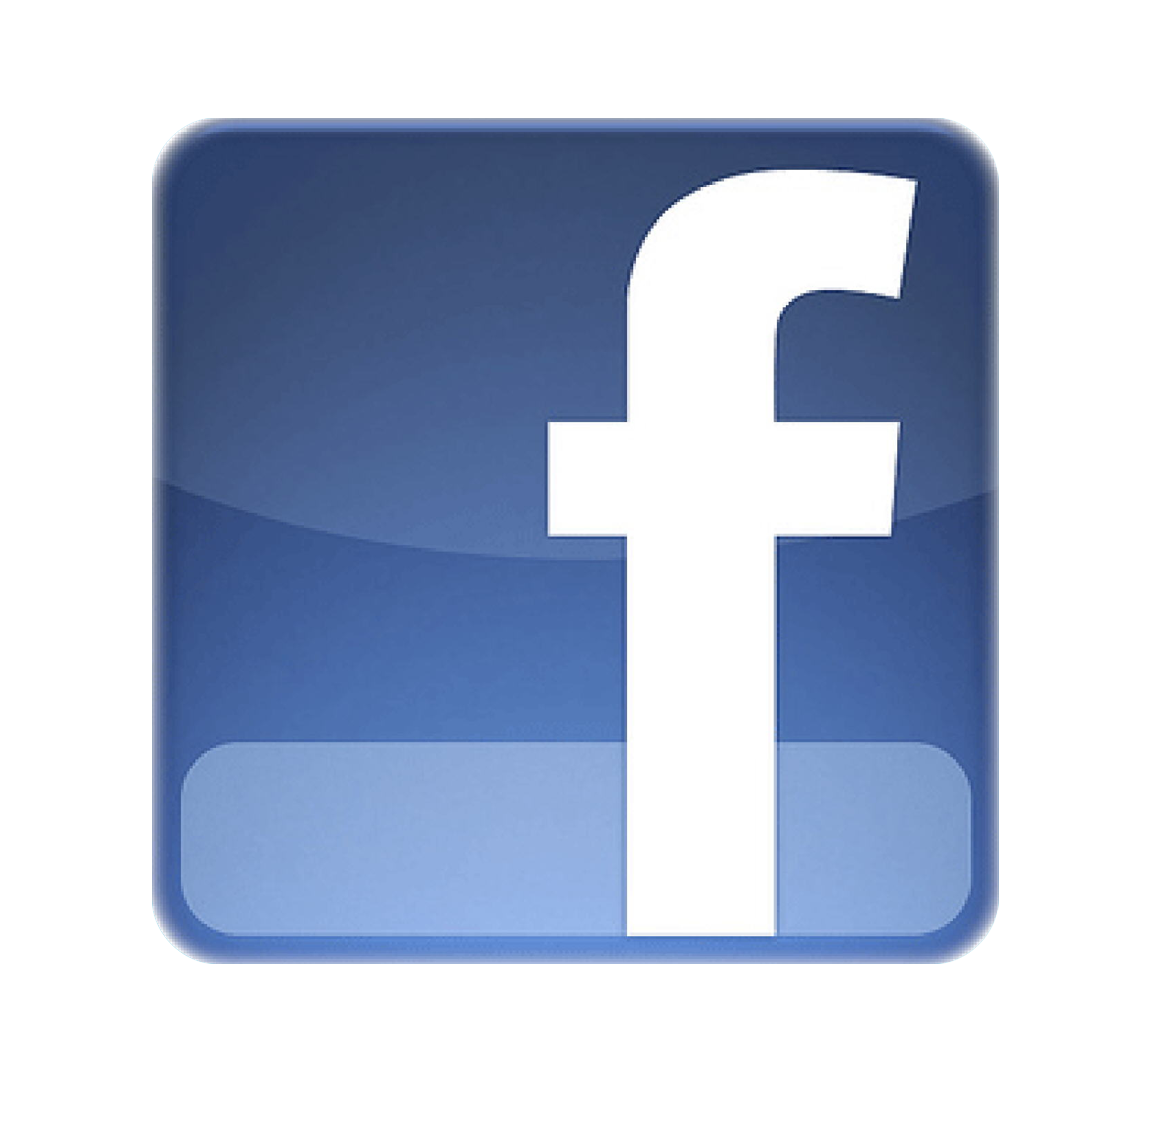 Logo instagram facebook twitter png. Transparent pictures free icons